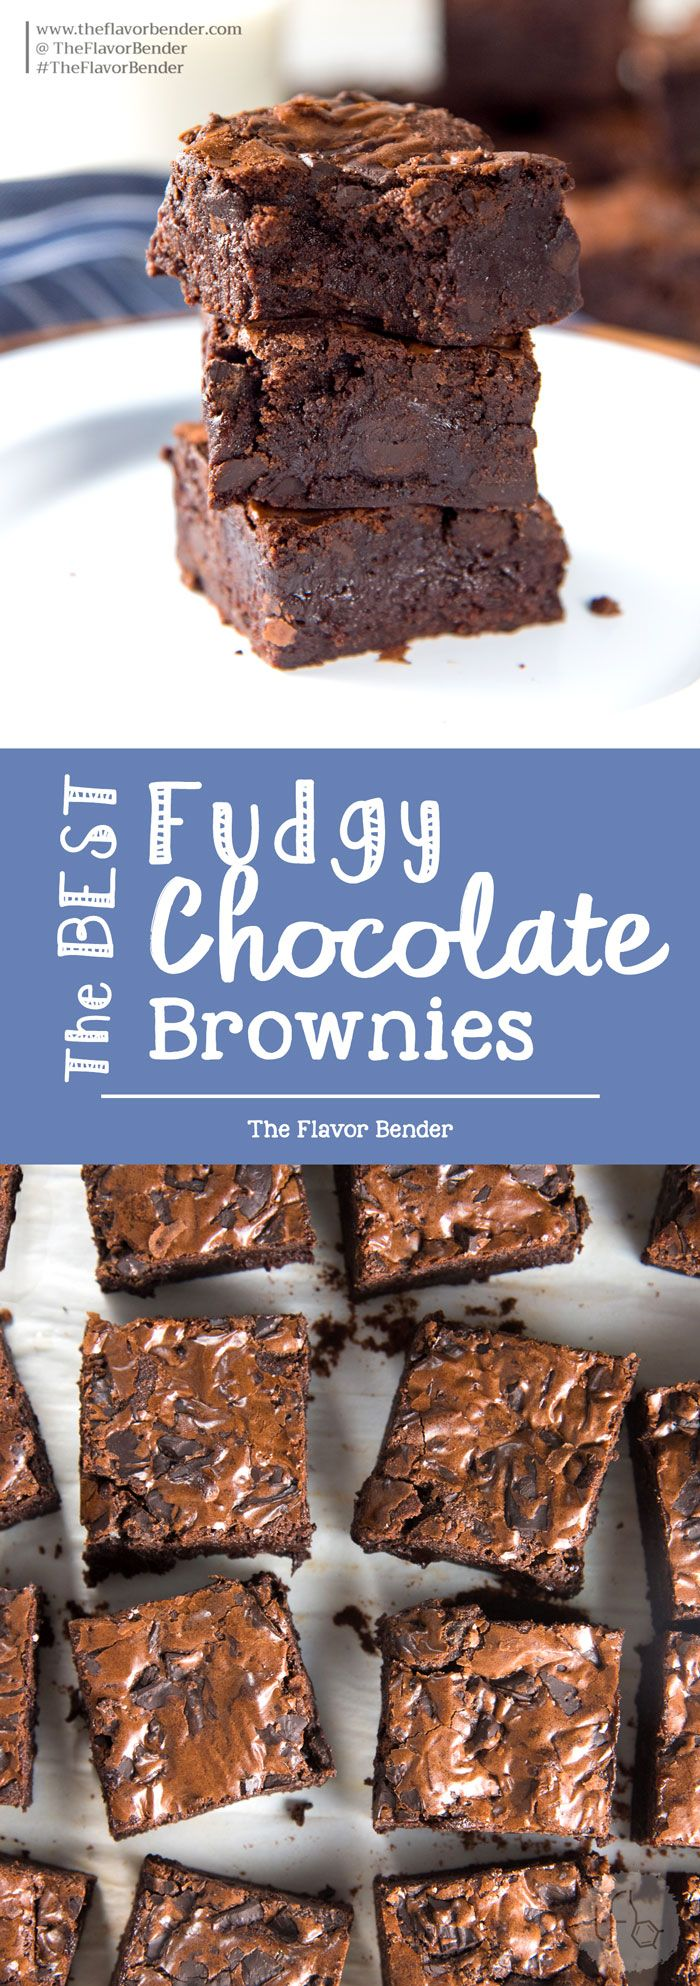 how to make brownies with powder